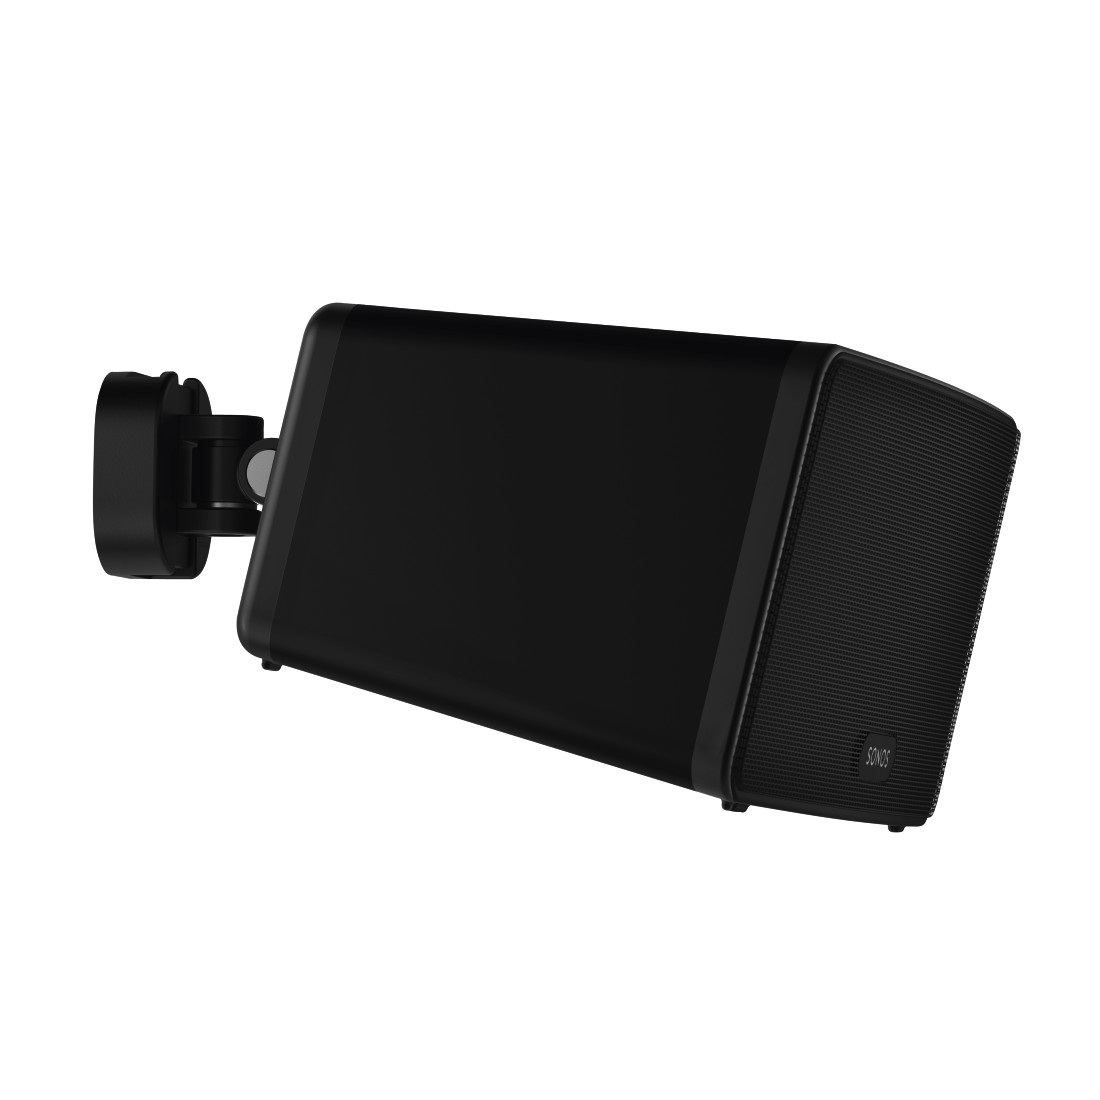 awx4 High-Res Appliance 4 - Hama, Wall Mount for Sonos PLAY:3, full motion, black